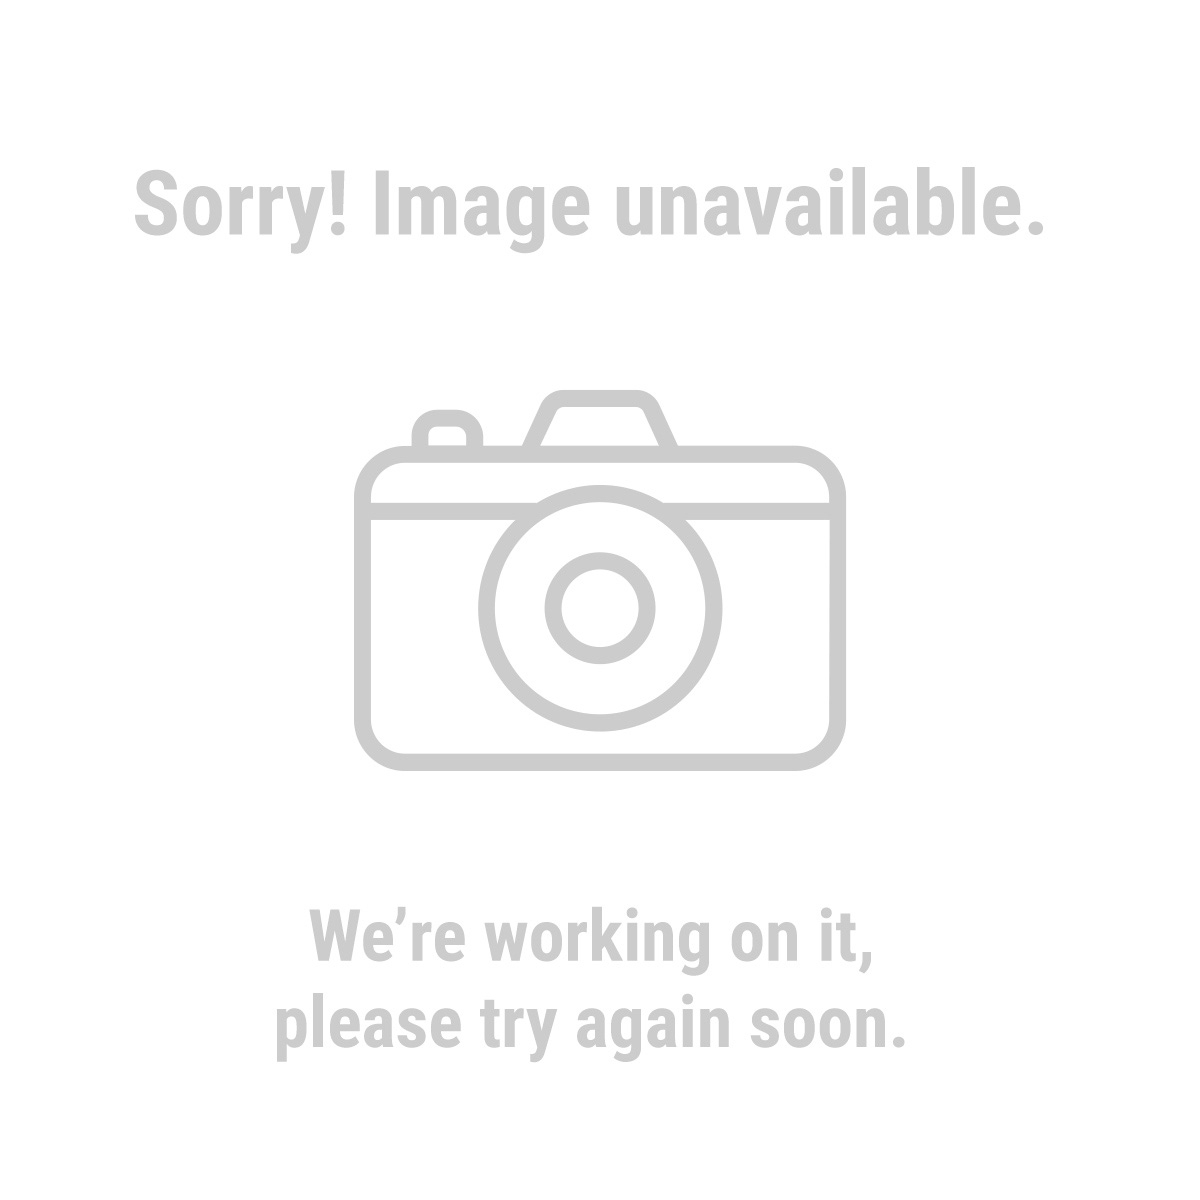 U.S. General® 61634 26 in. 4 Drawer 580 lb. Capacity Glossy Black Roller Cart